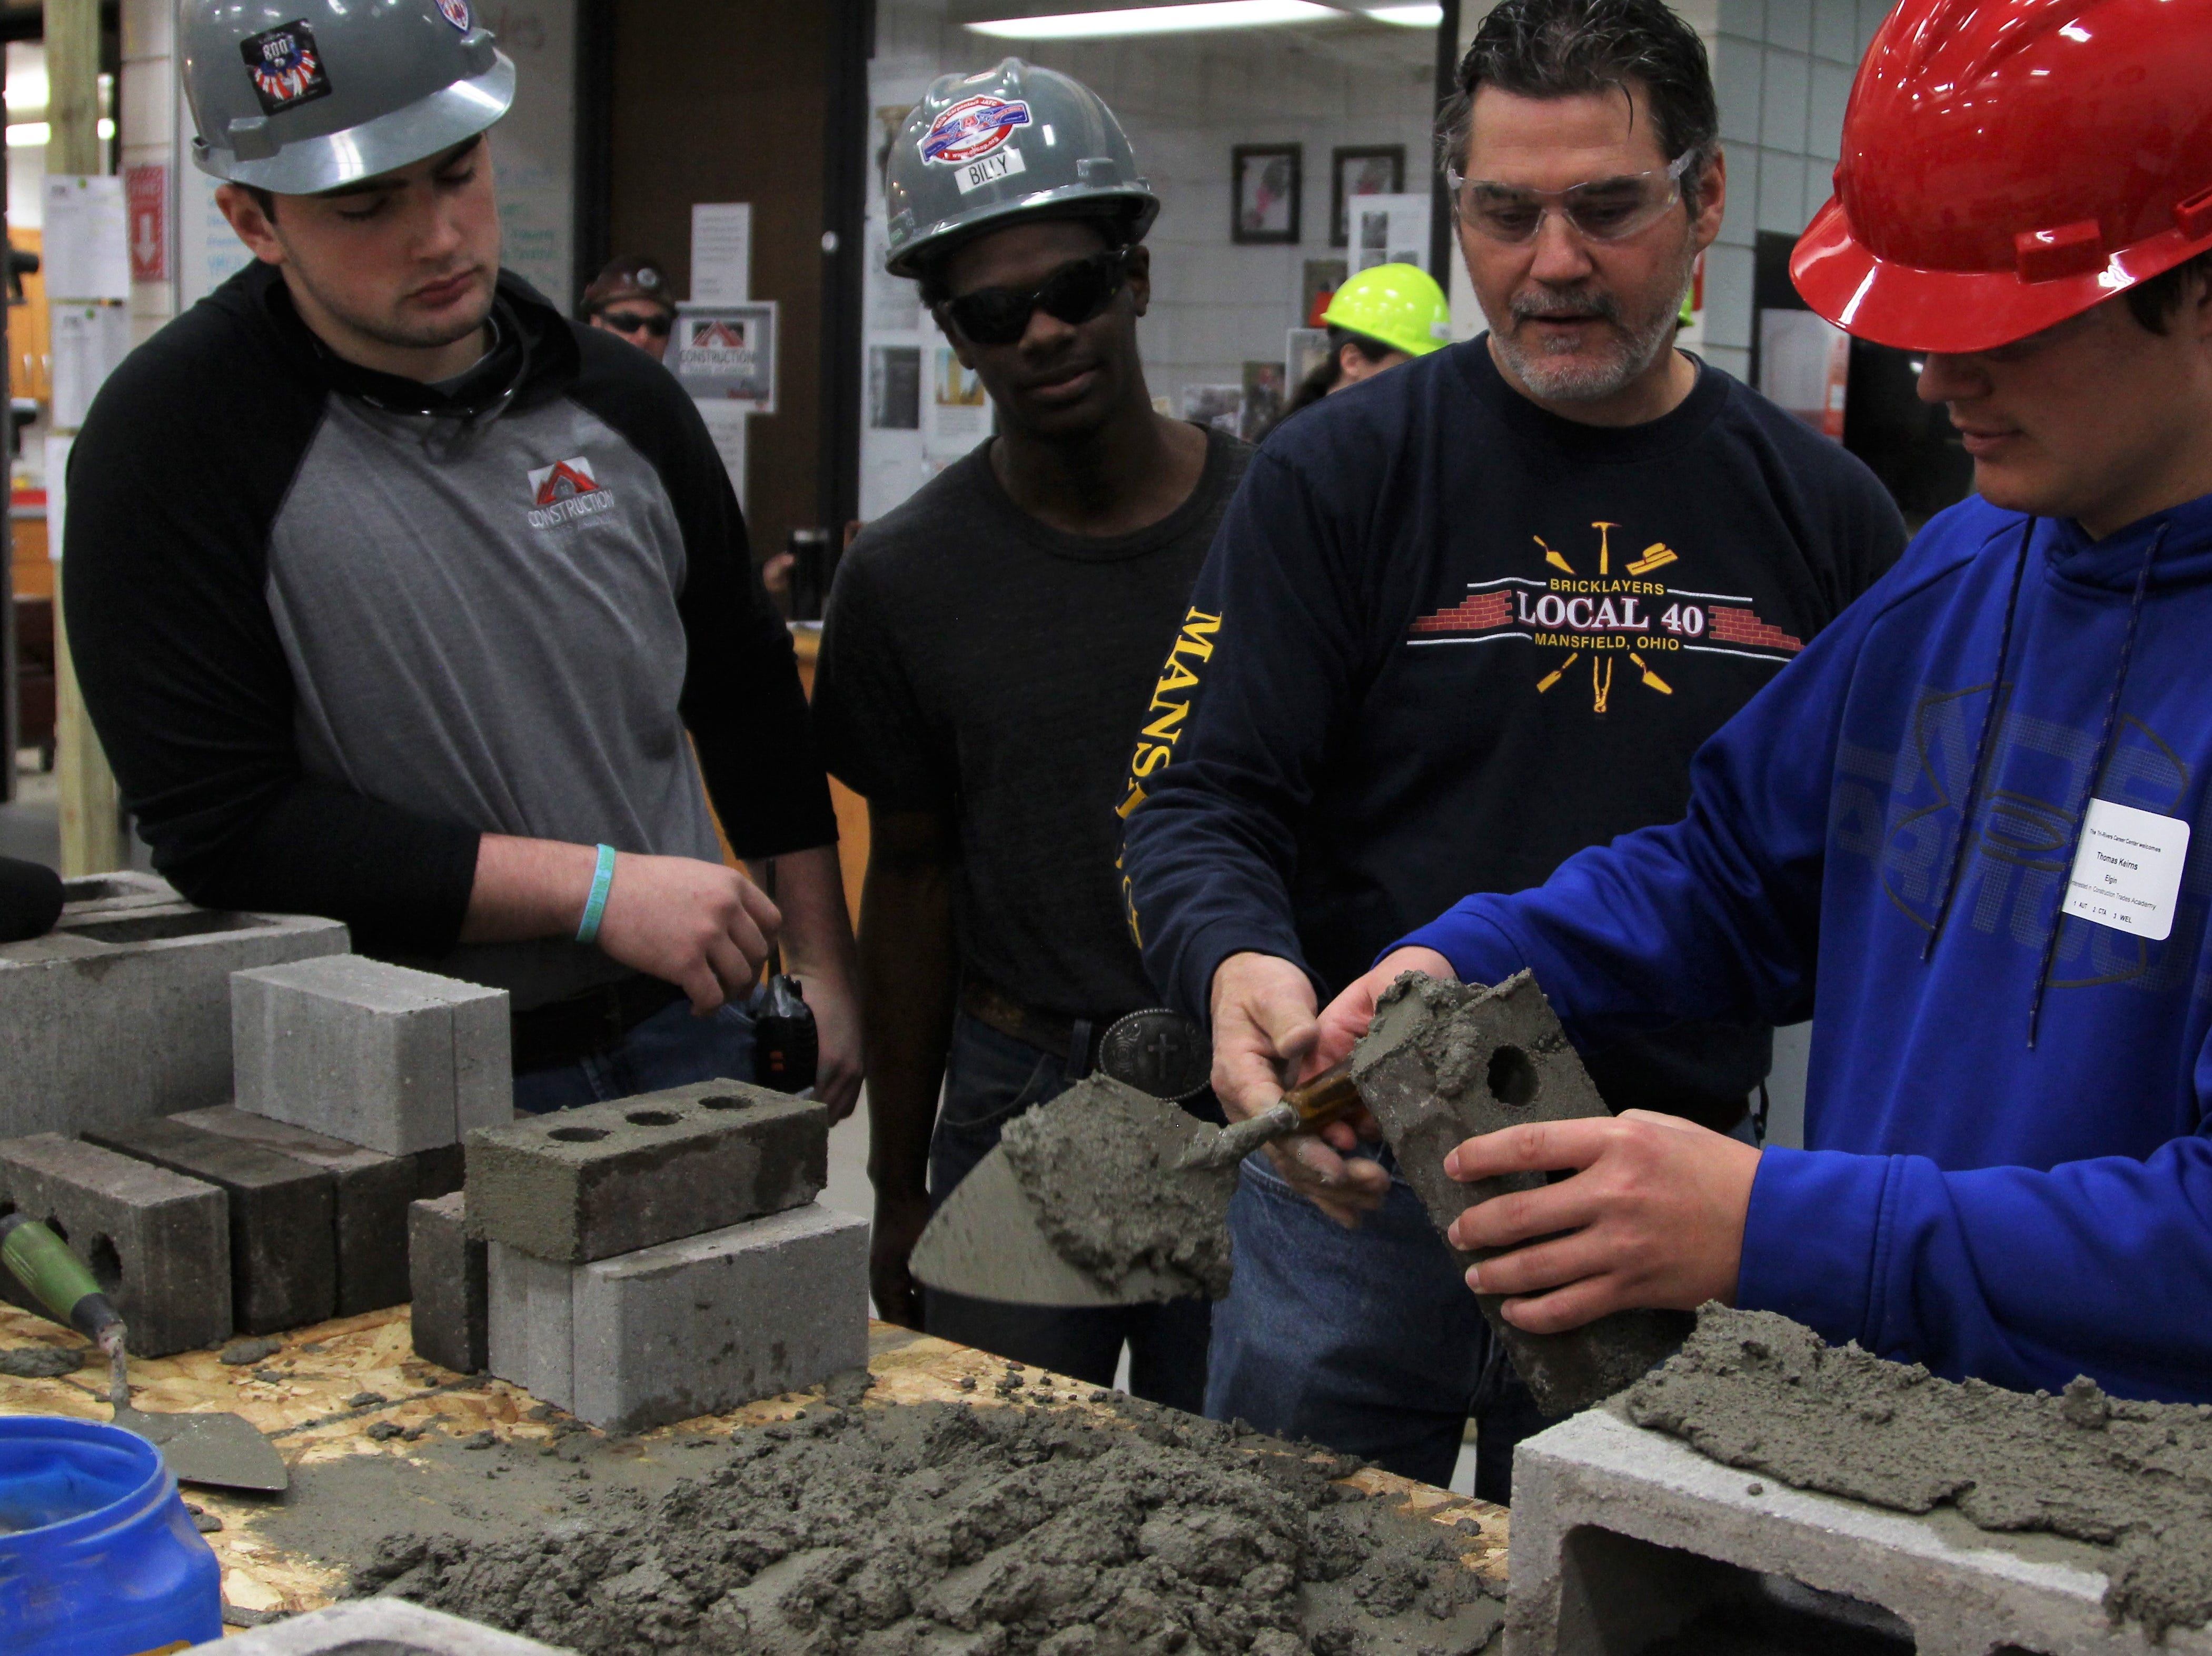 Matt McClester, a mason from Mansfield Local 40, helps Elgin freshman Thomas Keirns plaster a concrete brick. Union members and other professionals worked with potential students of the Construction Trades Academy at Tri-Rivers on Thursday. It was one of several work sessions scheduled throughout the day.